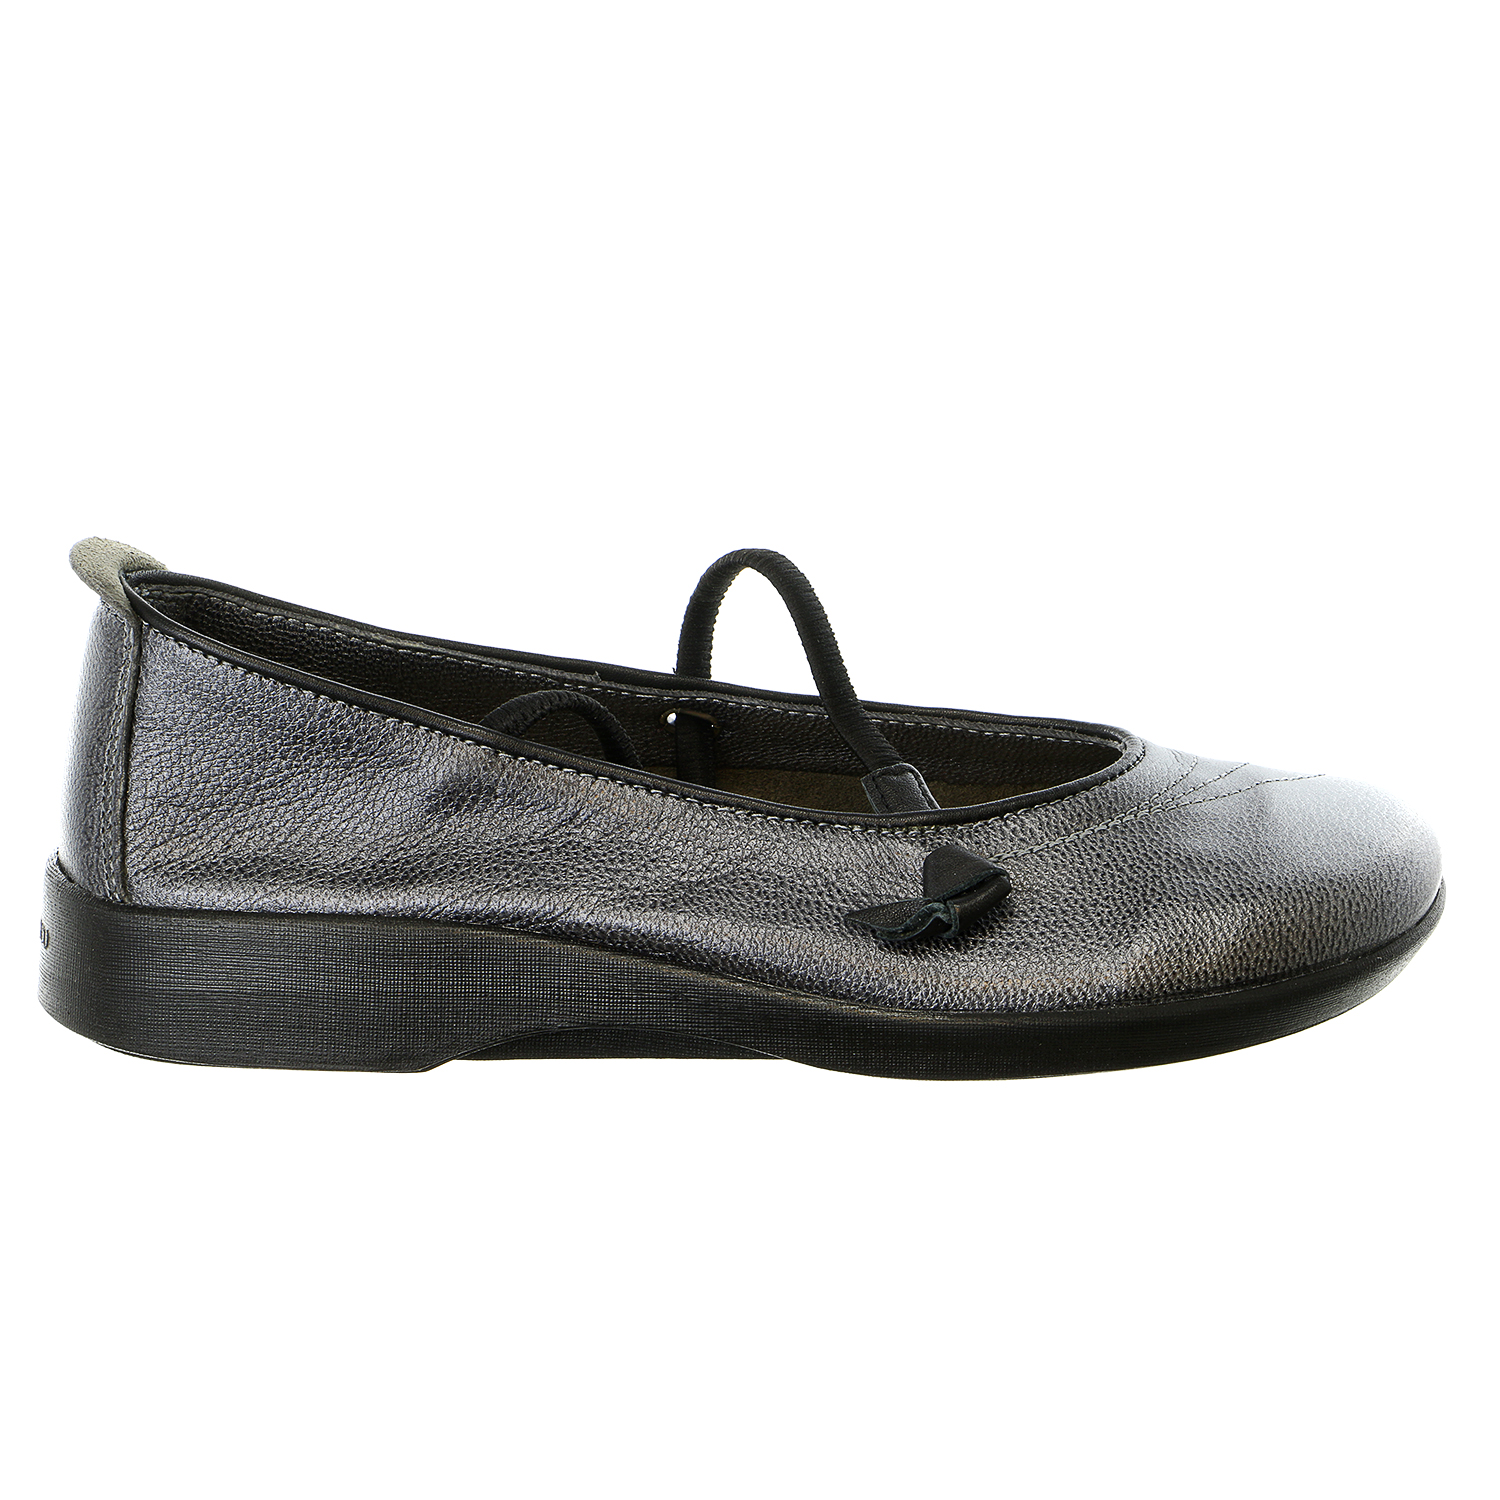 Arcopedico Vitoria Mary Jane Flats Slip On Shoe Womens by Arcopedico